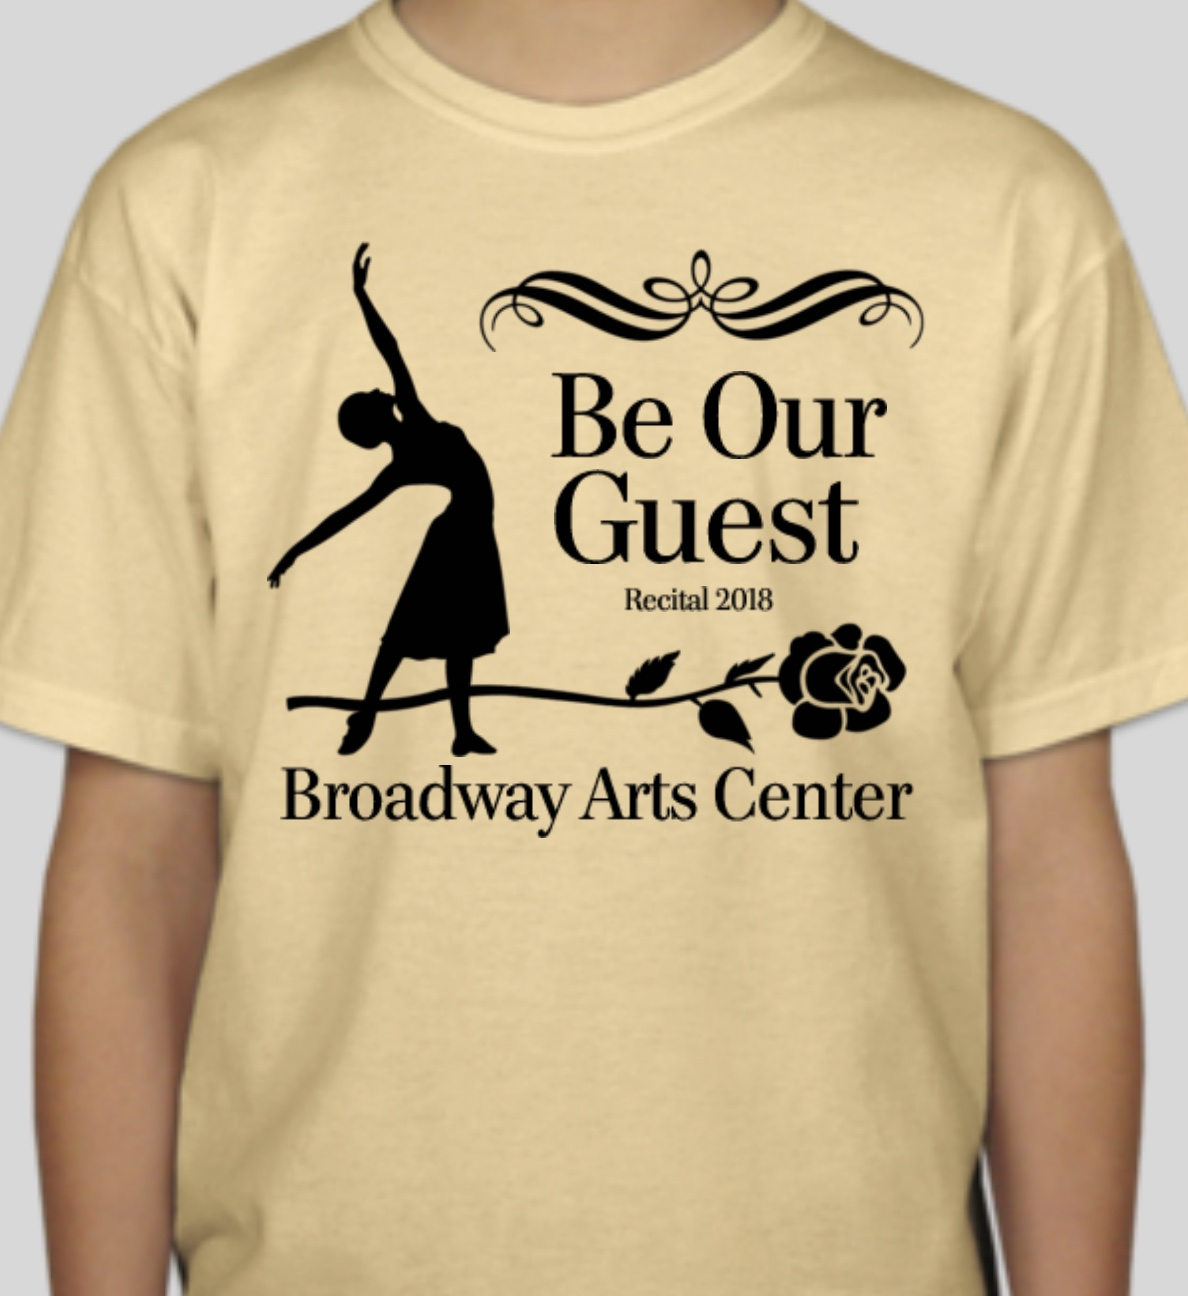 REcital ShirtS $16 - ORDER ONLINE BY APRIL 8, 2018